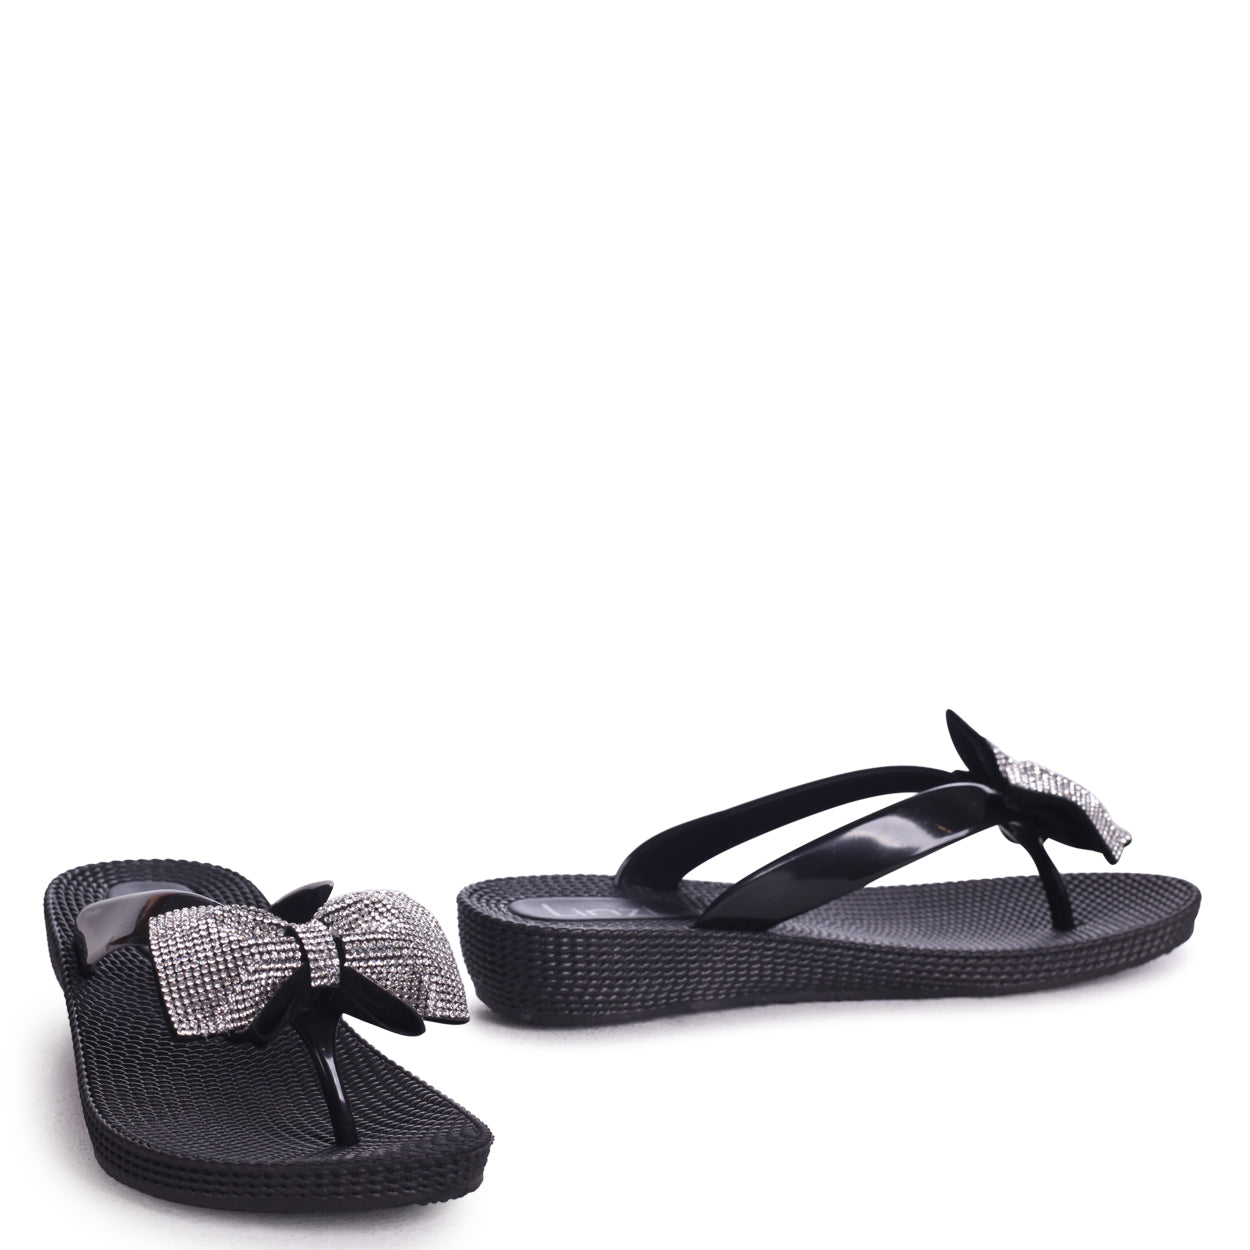 5bbaee329 Black Wedged Jelly Flip Flop With Diamante Bow – Linzi